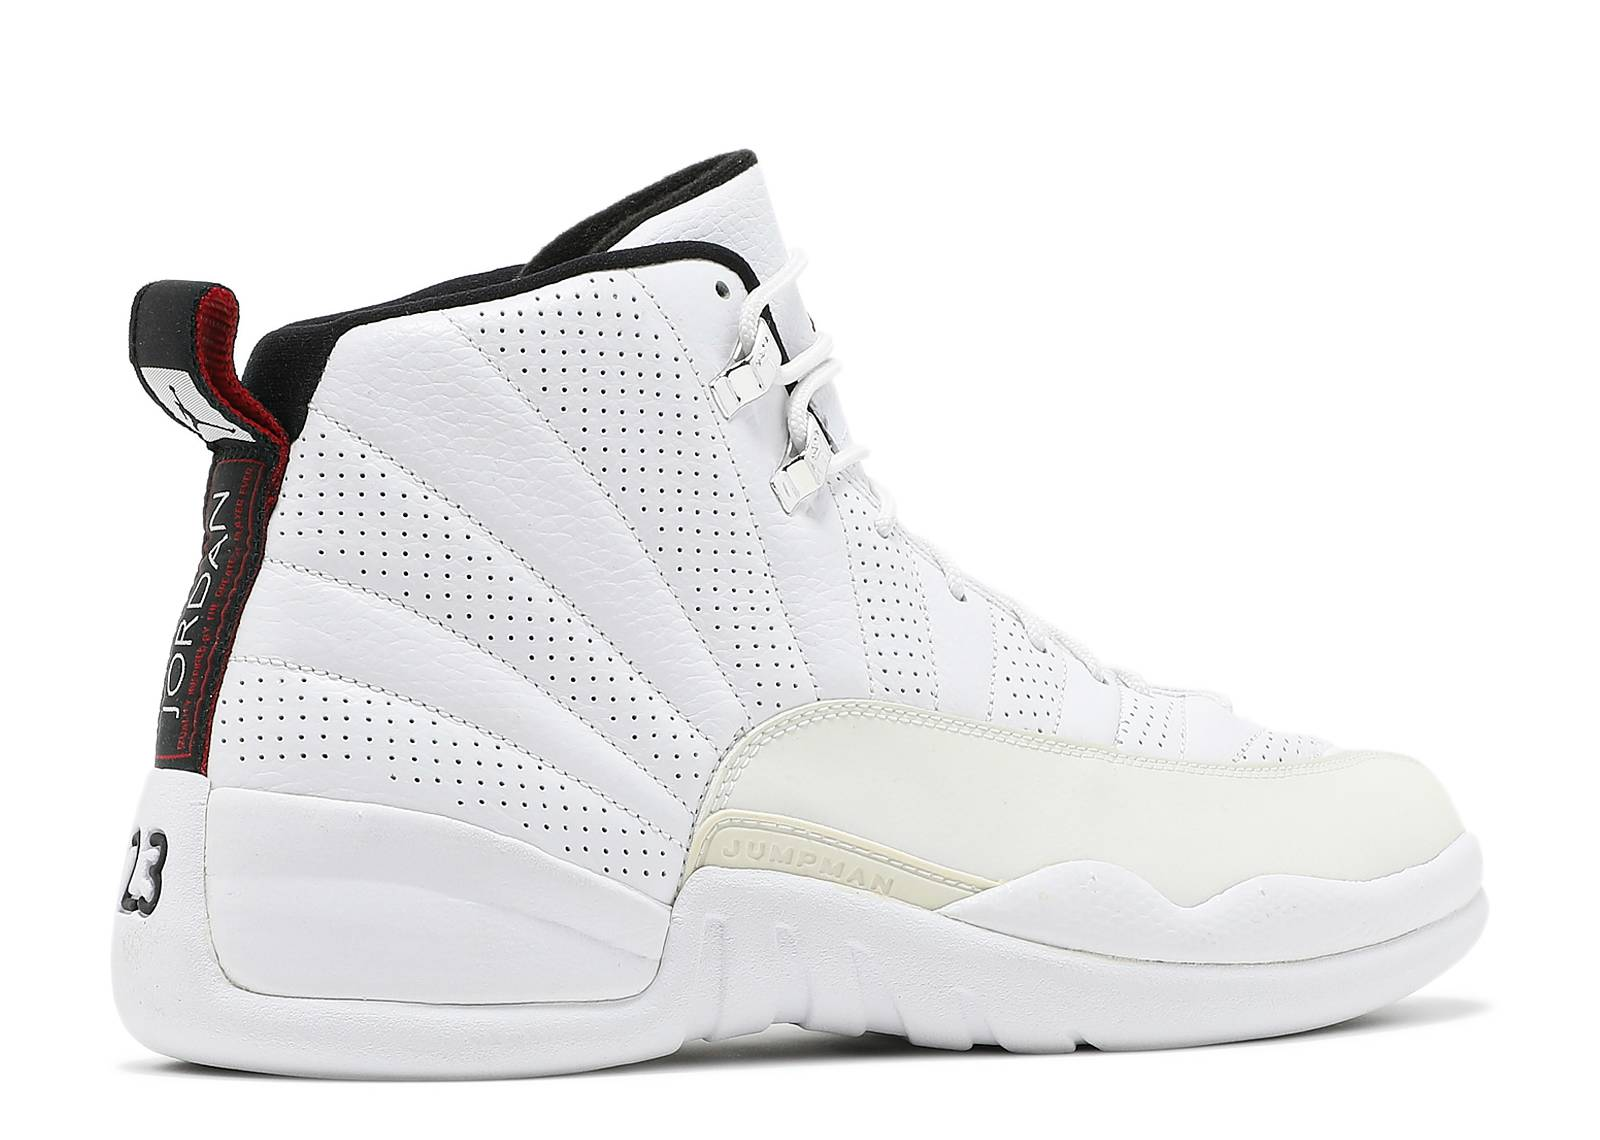 a56765ff4b2 all white retro jordans on sale > OFF74% Discounts